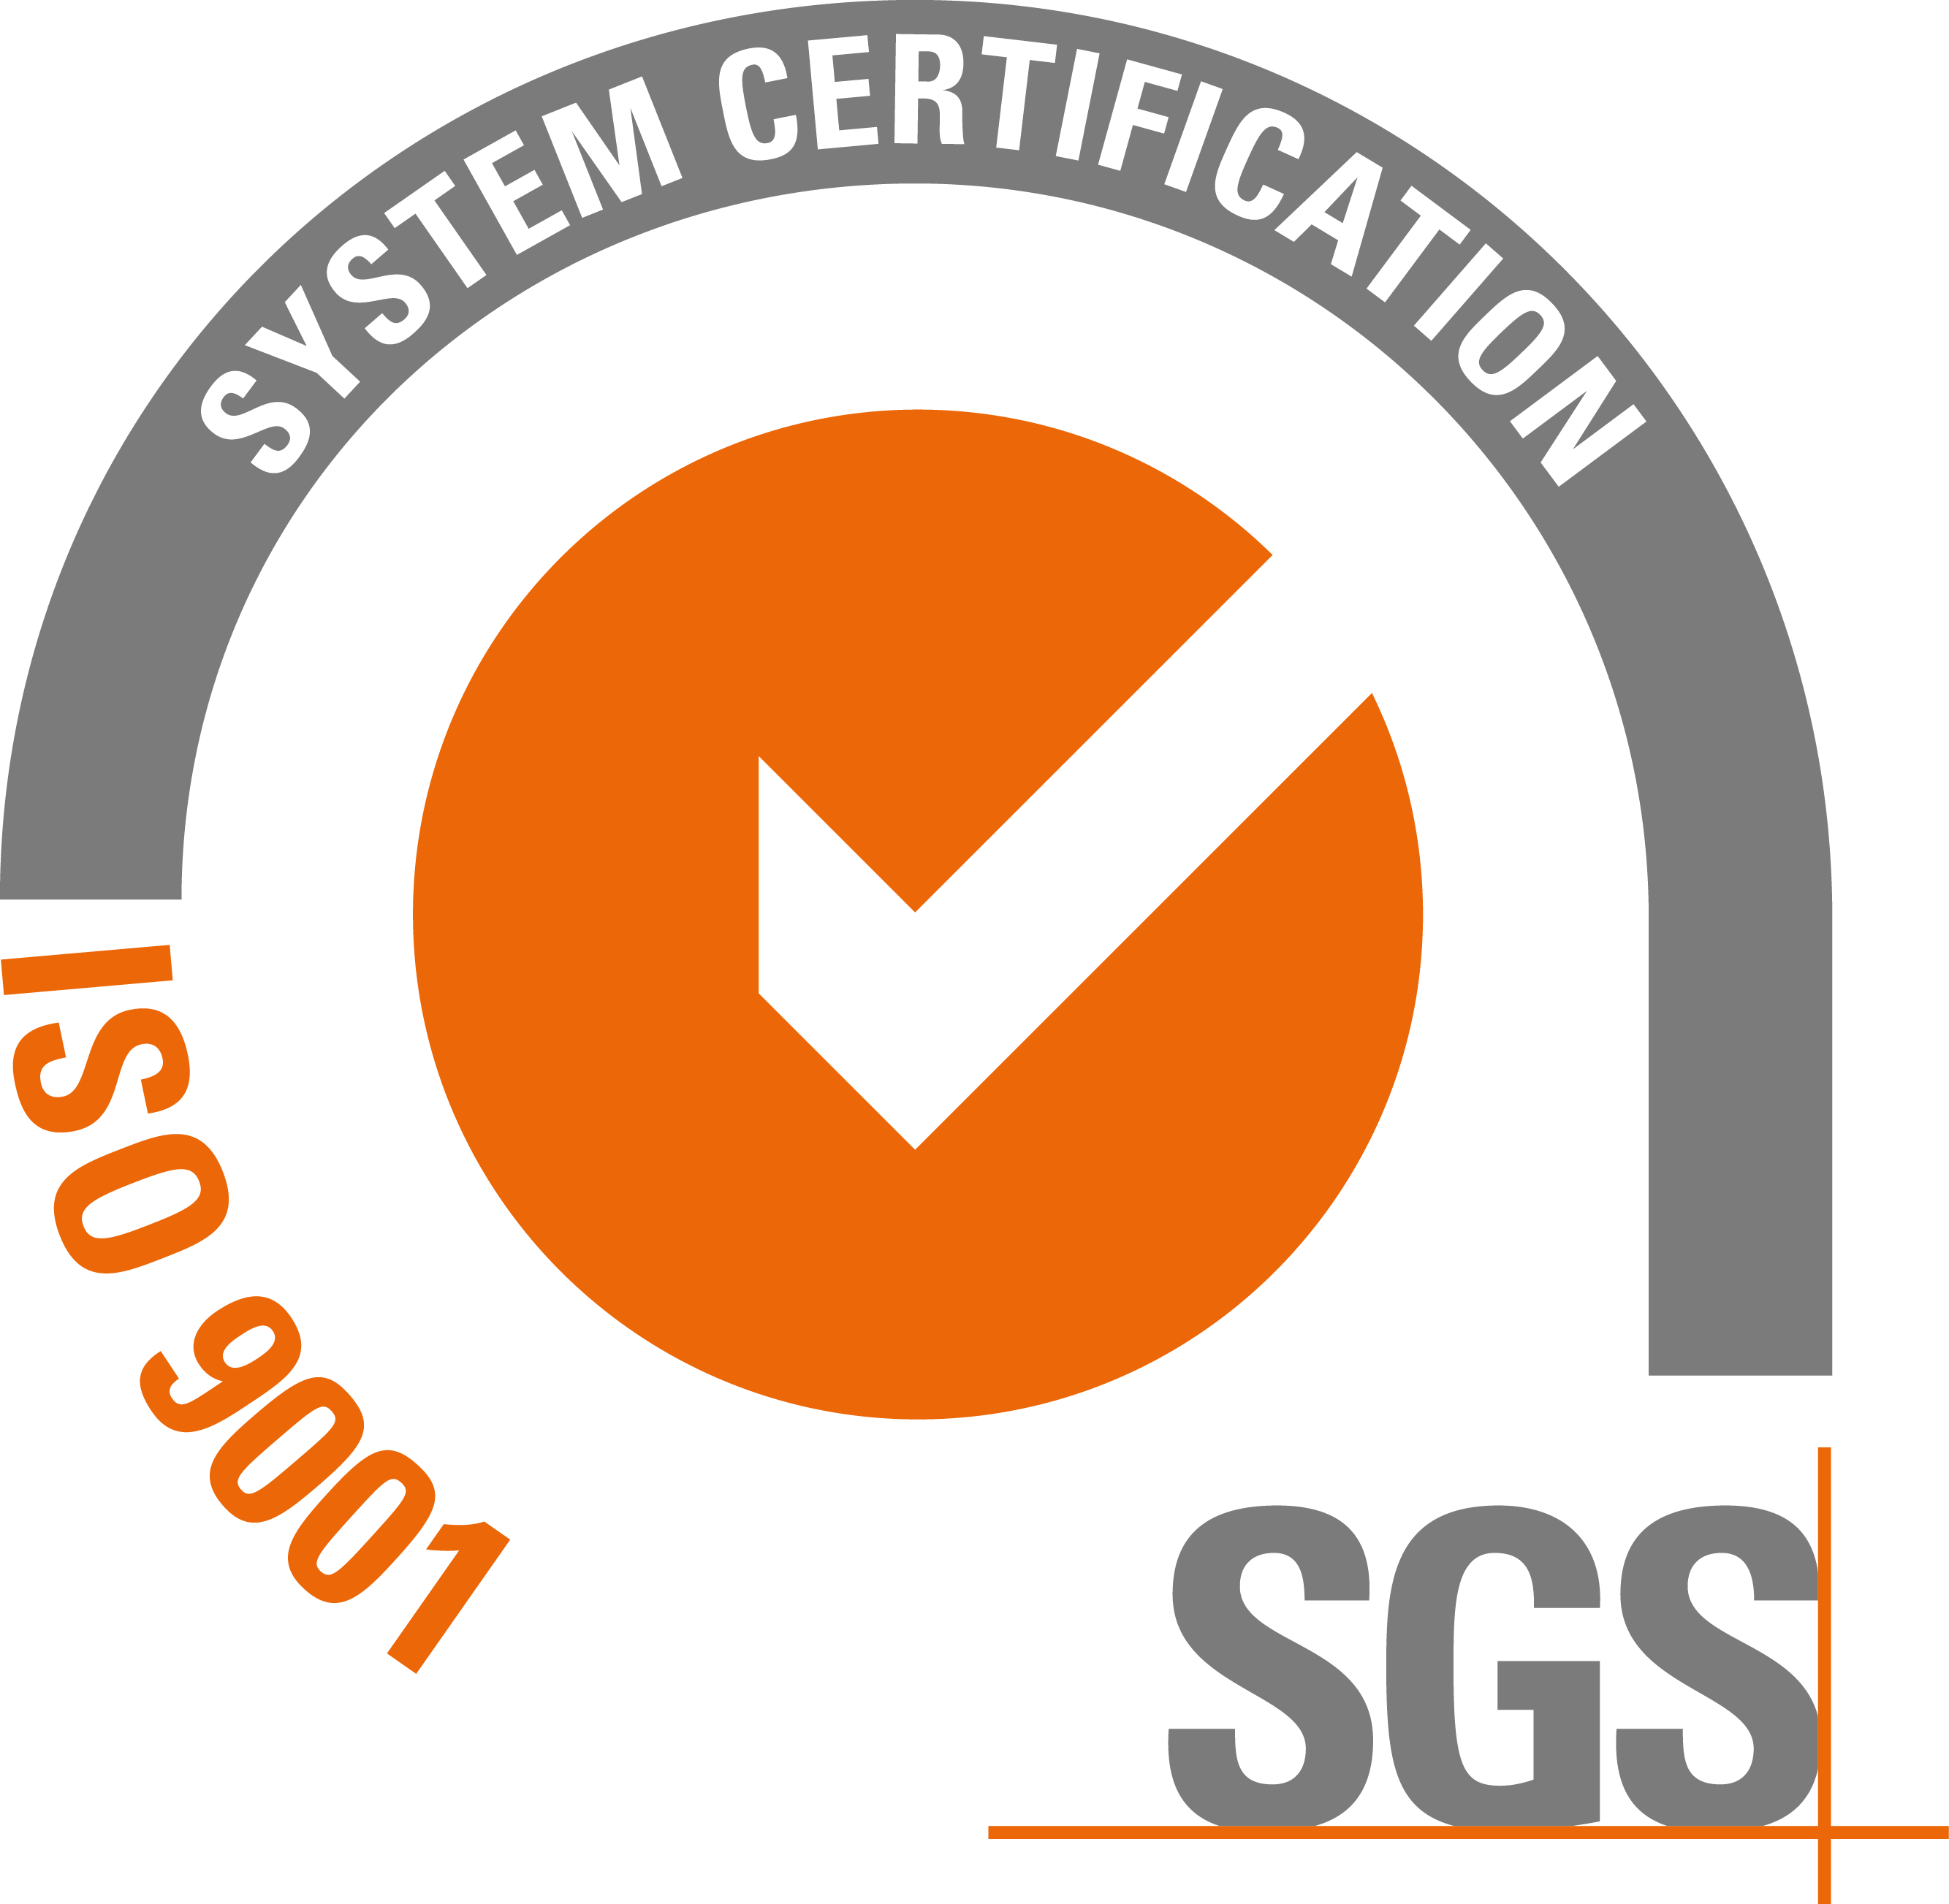 ISO 9001 - SGS System Certification